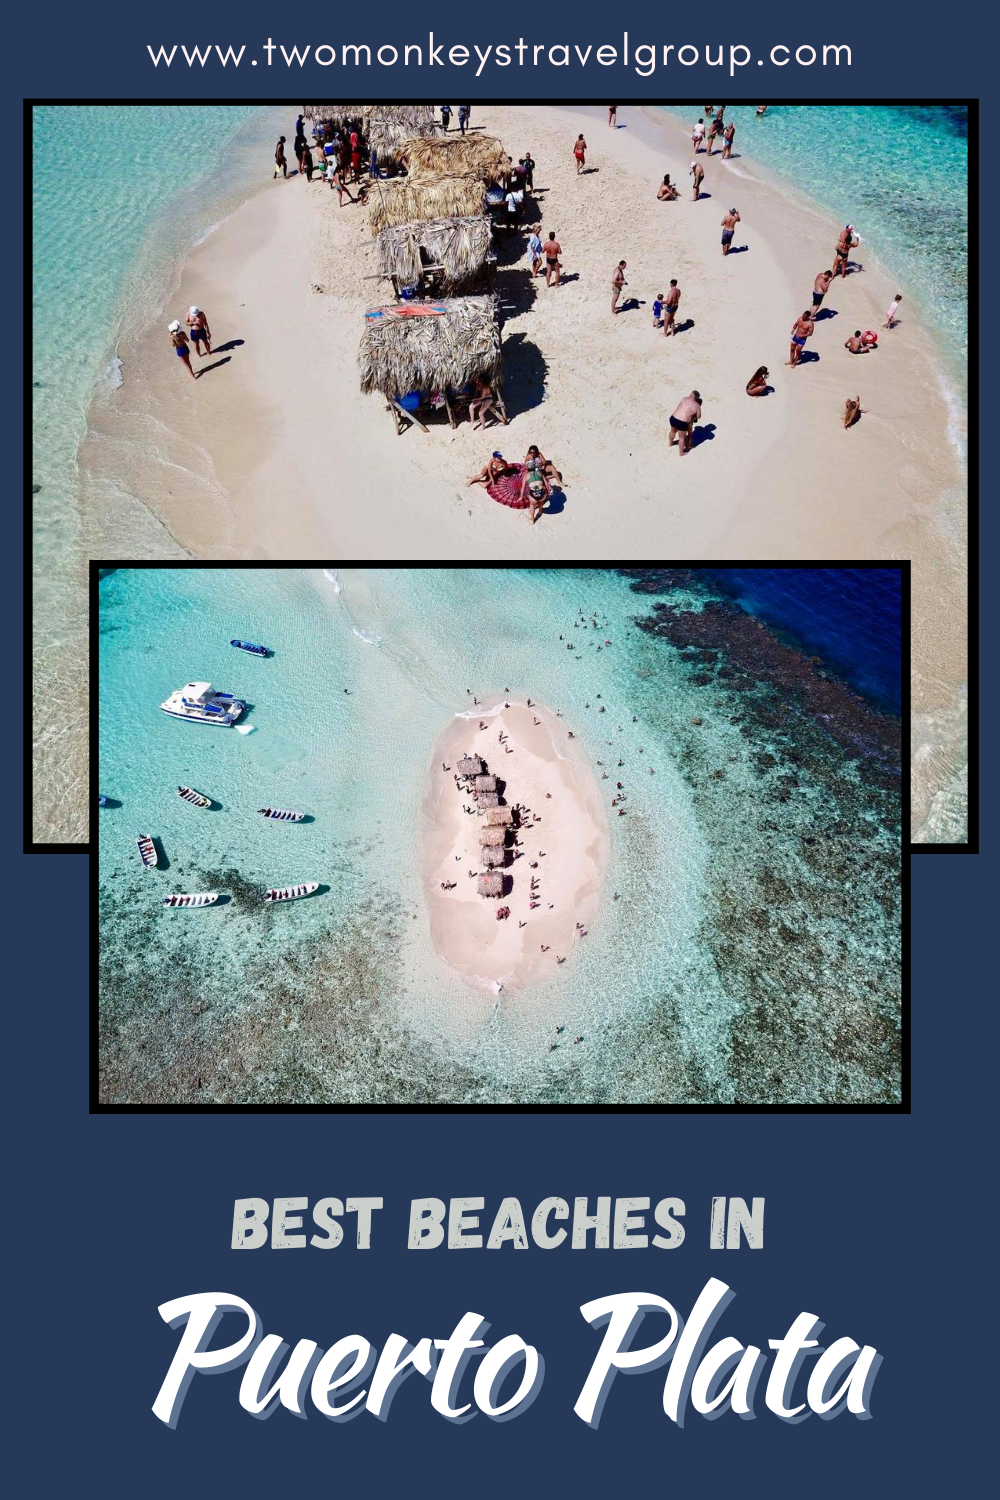 The Best Beaches in Puerto Plata Top 10 Puerto Plata Beaches